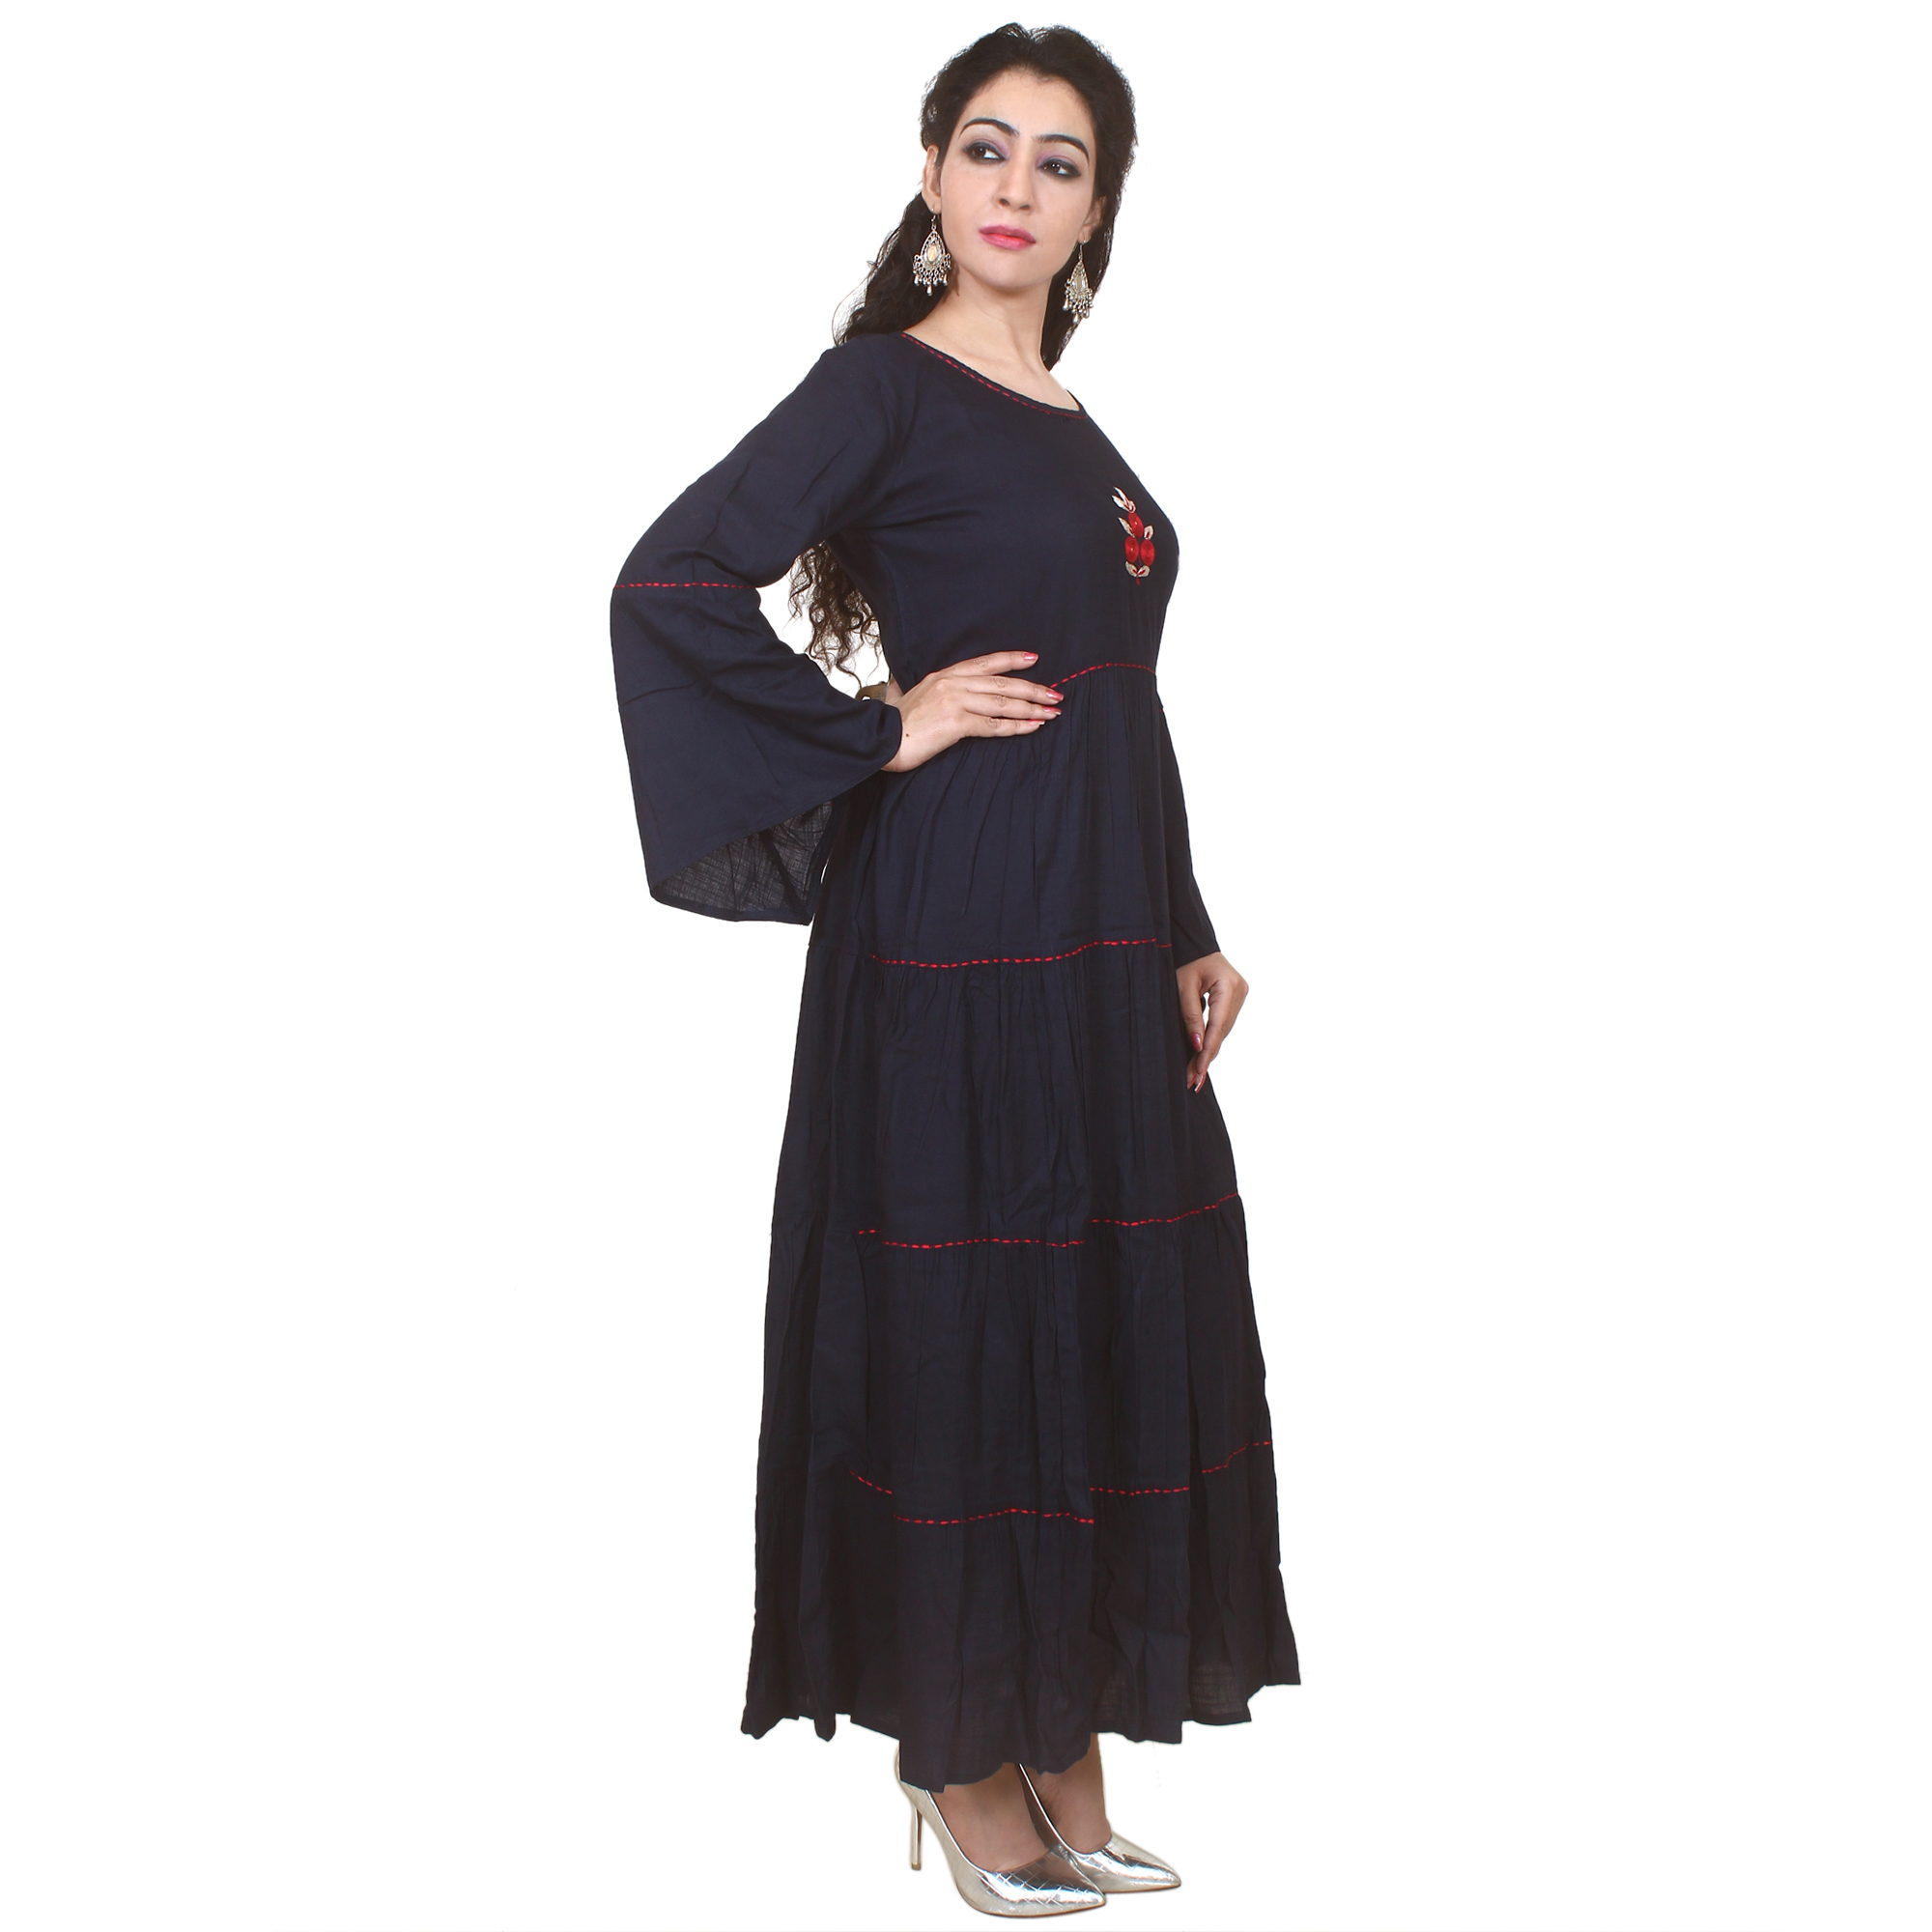 Kuber Industries Women Embroidered Anarkali Kurta  (Dark Blue)